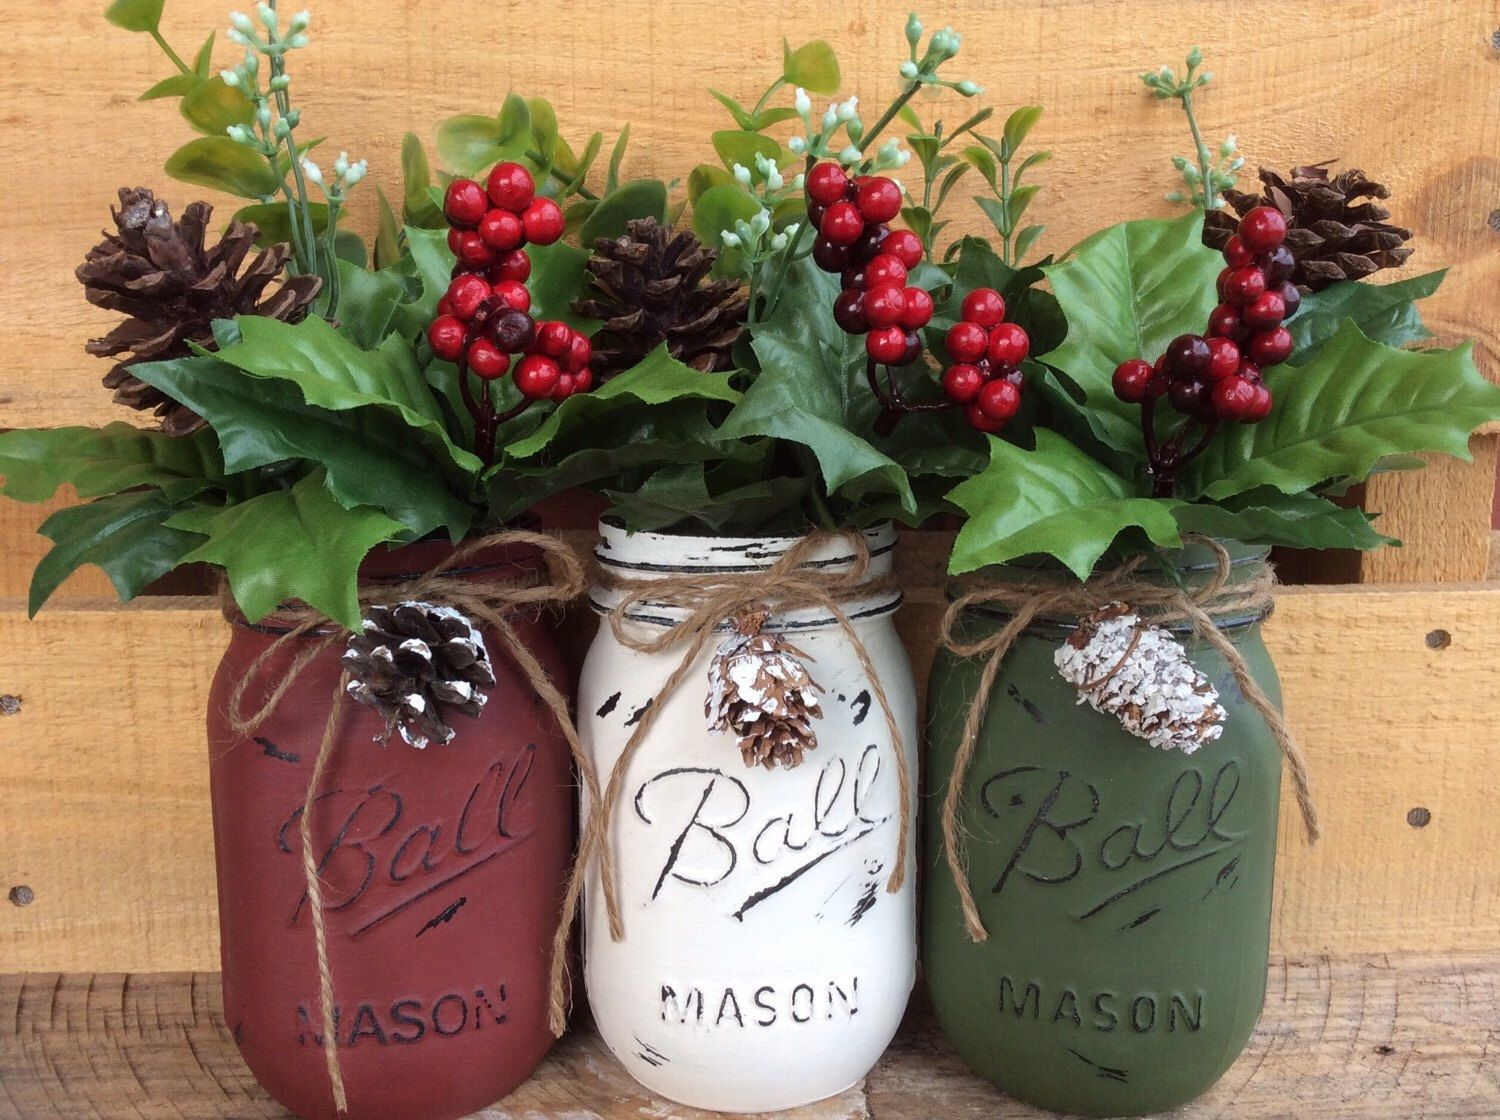 Country christmas decorations 2014 - Painted Mason Jars Christmas Decor Vase Home Decor Holiday Decor Rustic Decor Christmas Jars Gifts